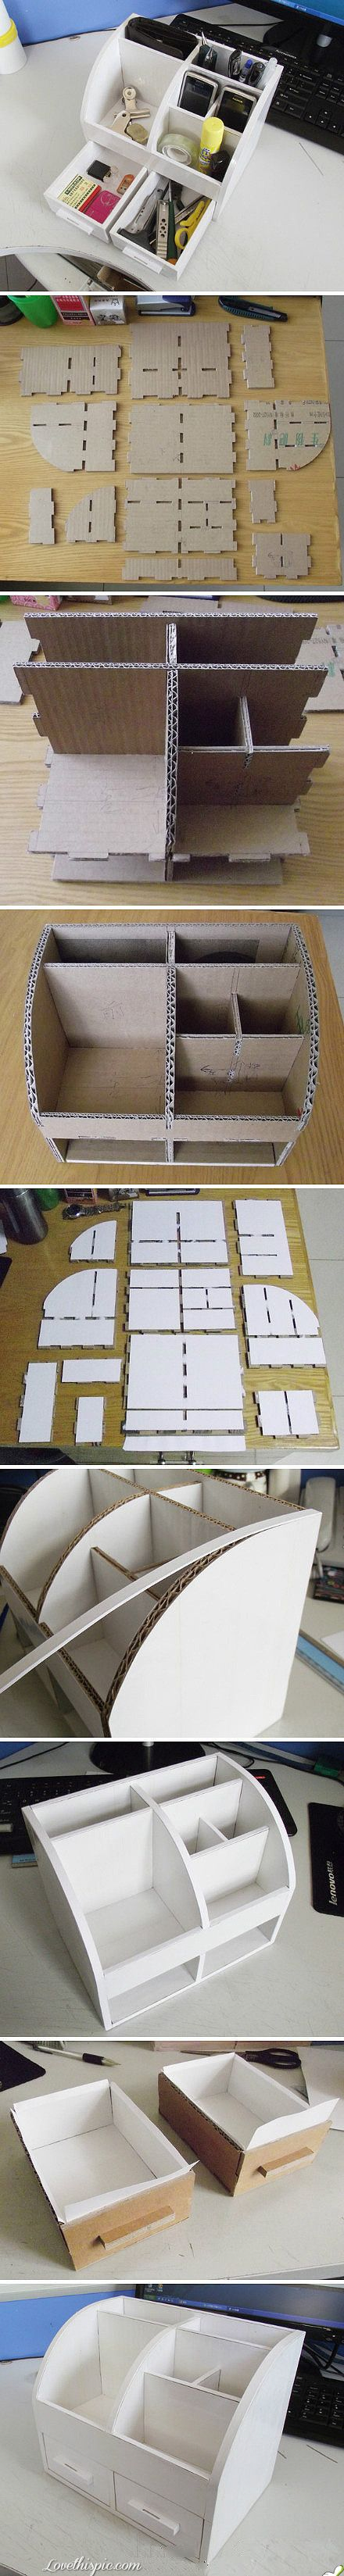 DIY Cardboard Organizer - something to satisfy my need for destruction if nothing else